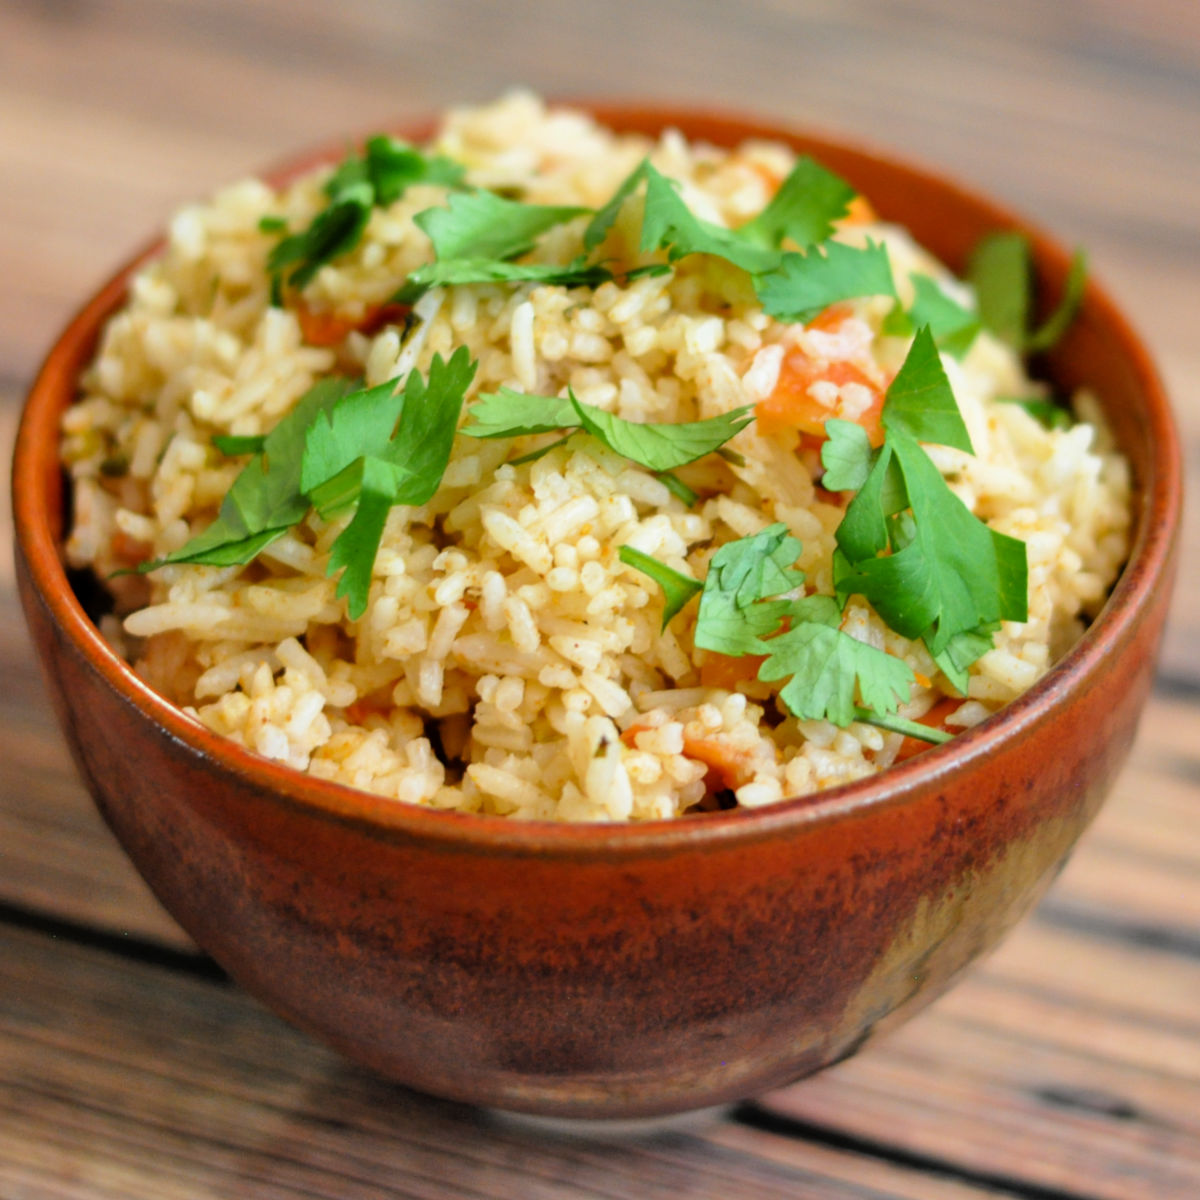 Spanish rice garnished with cilantro in a red ceramic bowl.